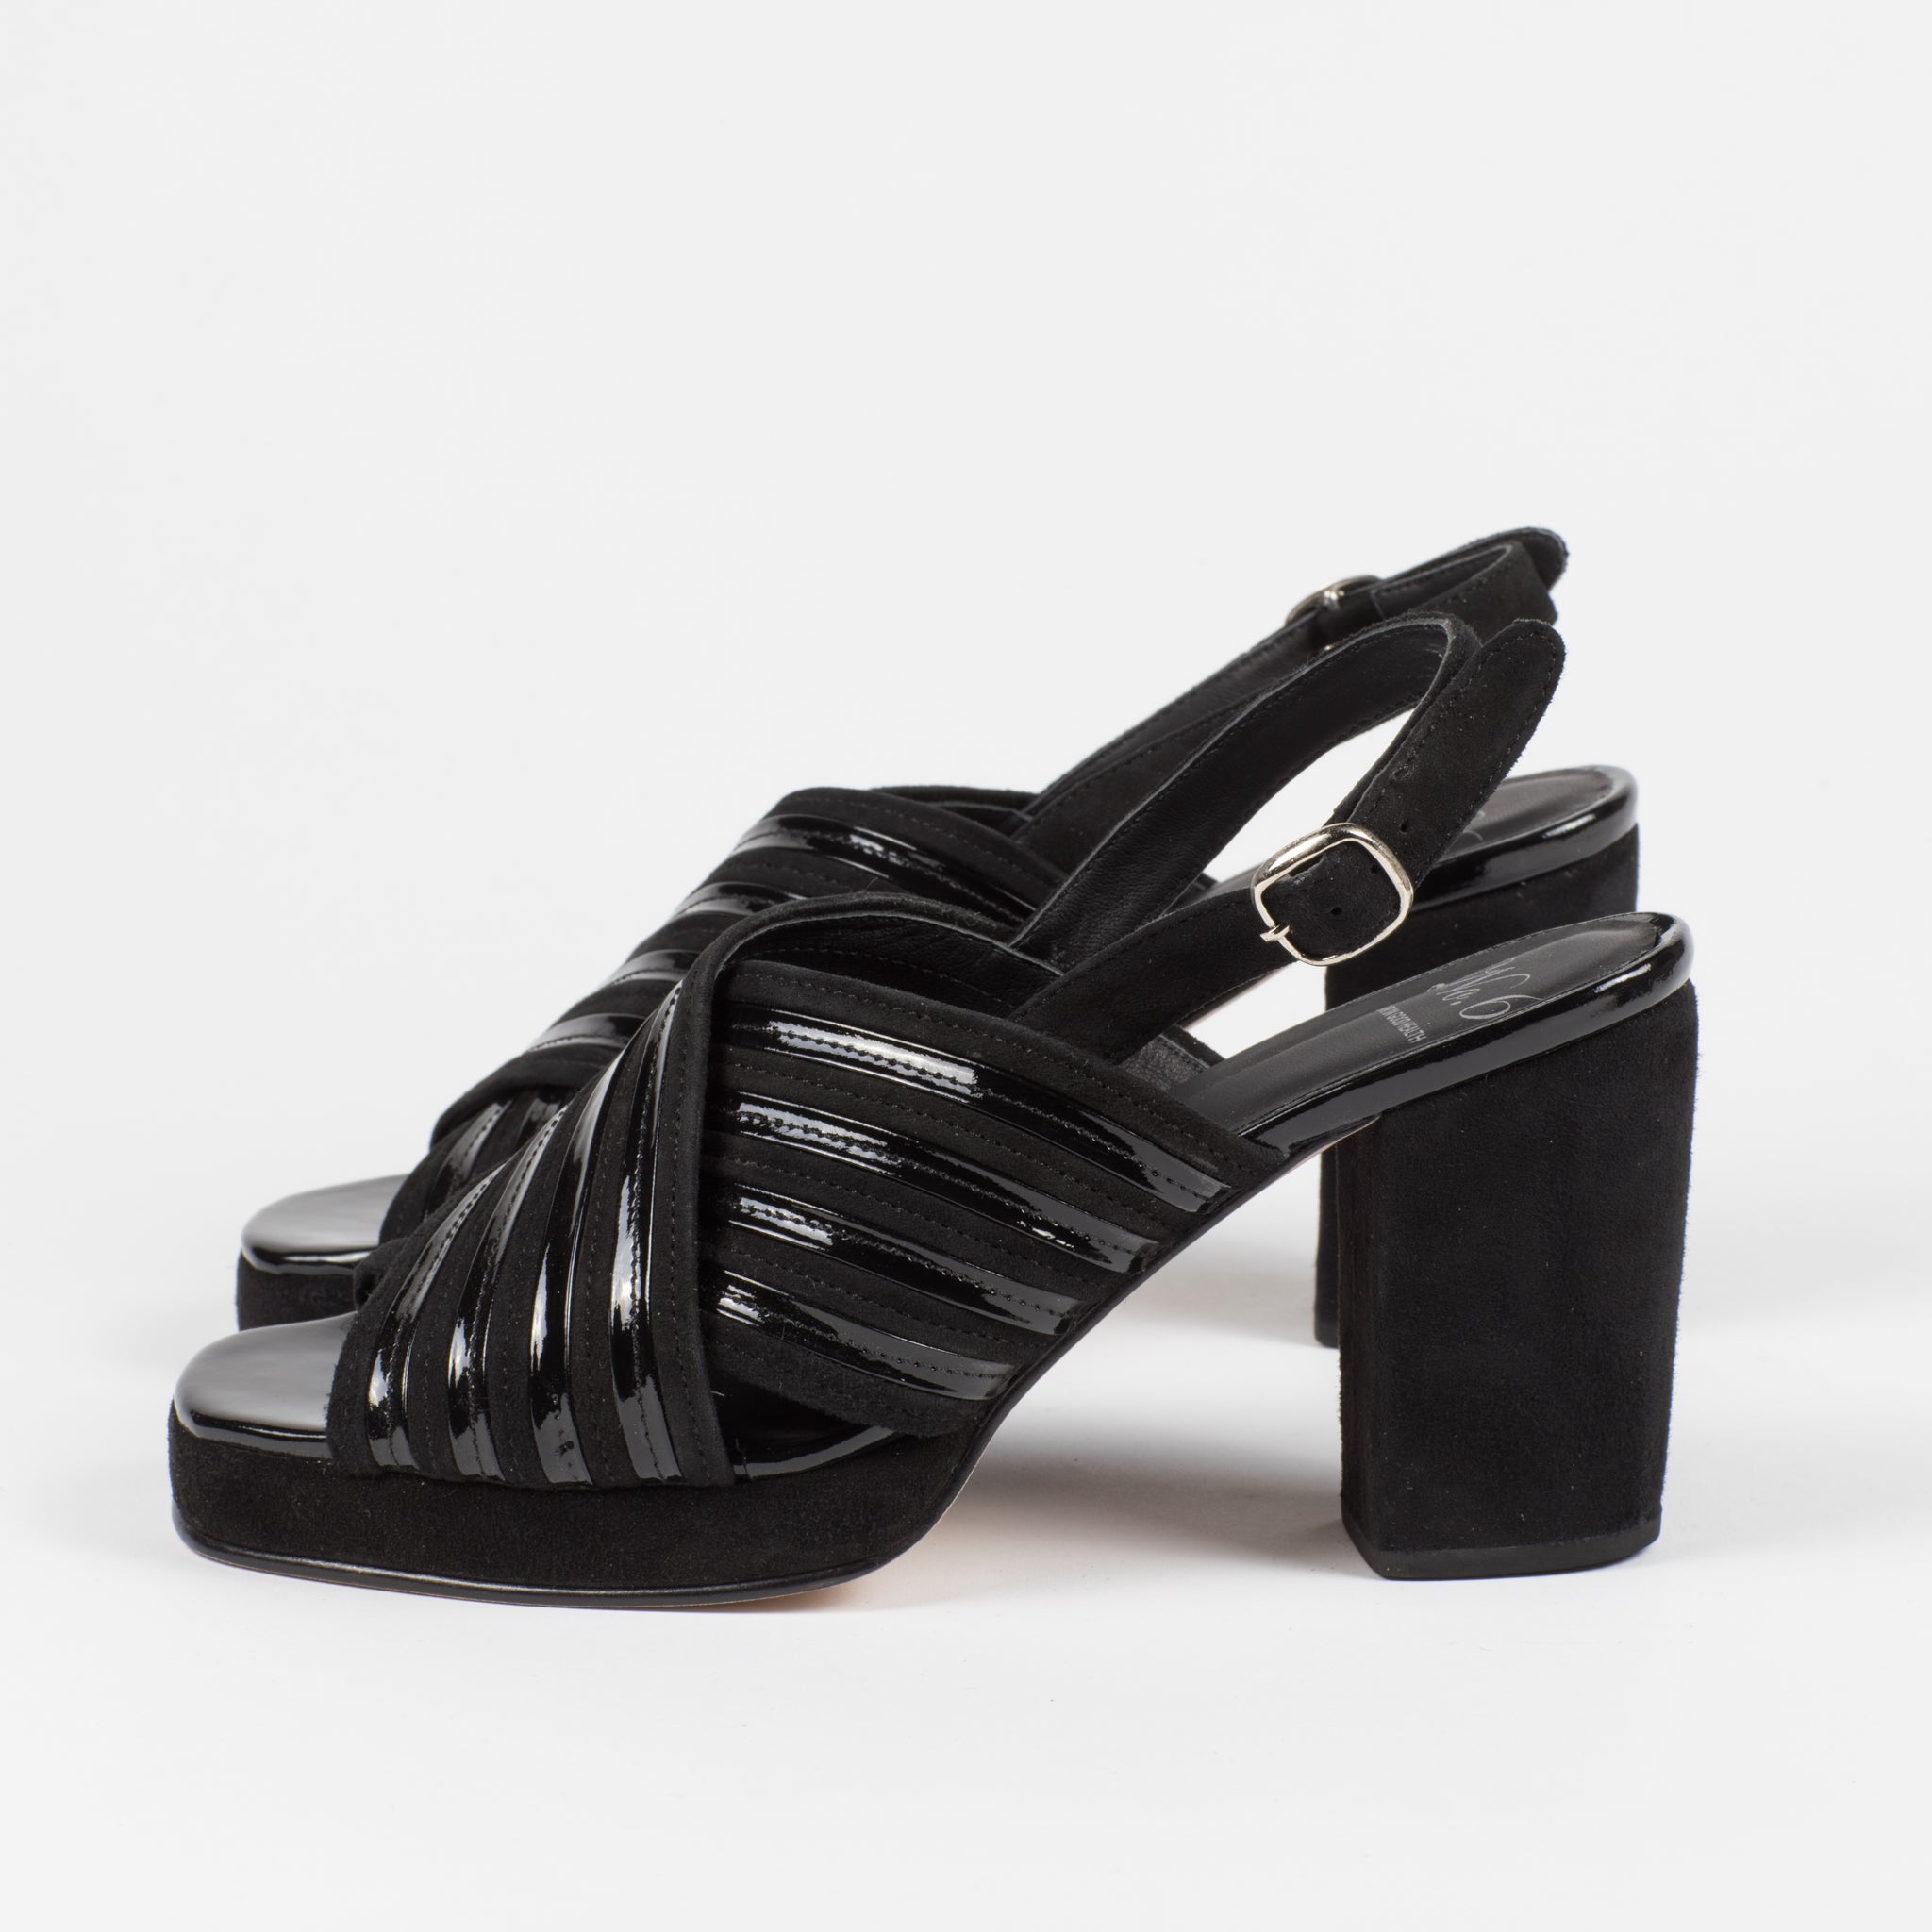 No. 6 - Lola High Heel